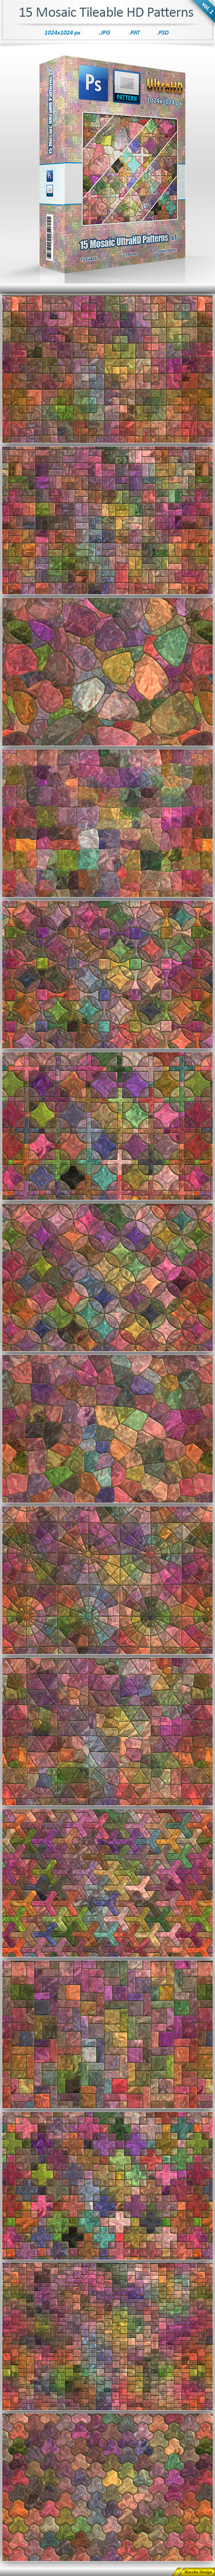 Mosaic Tileable Patterns vol 1